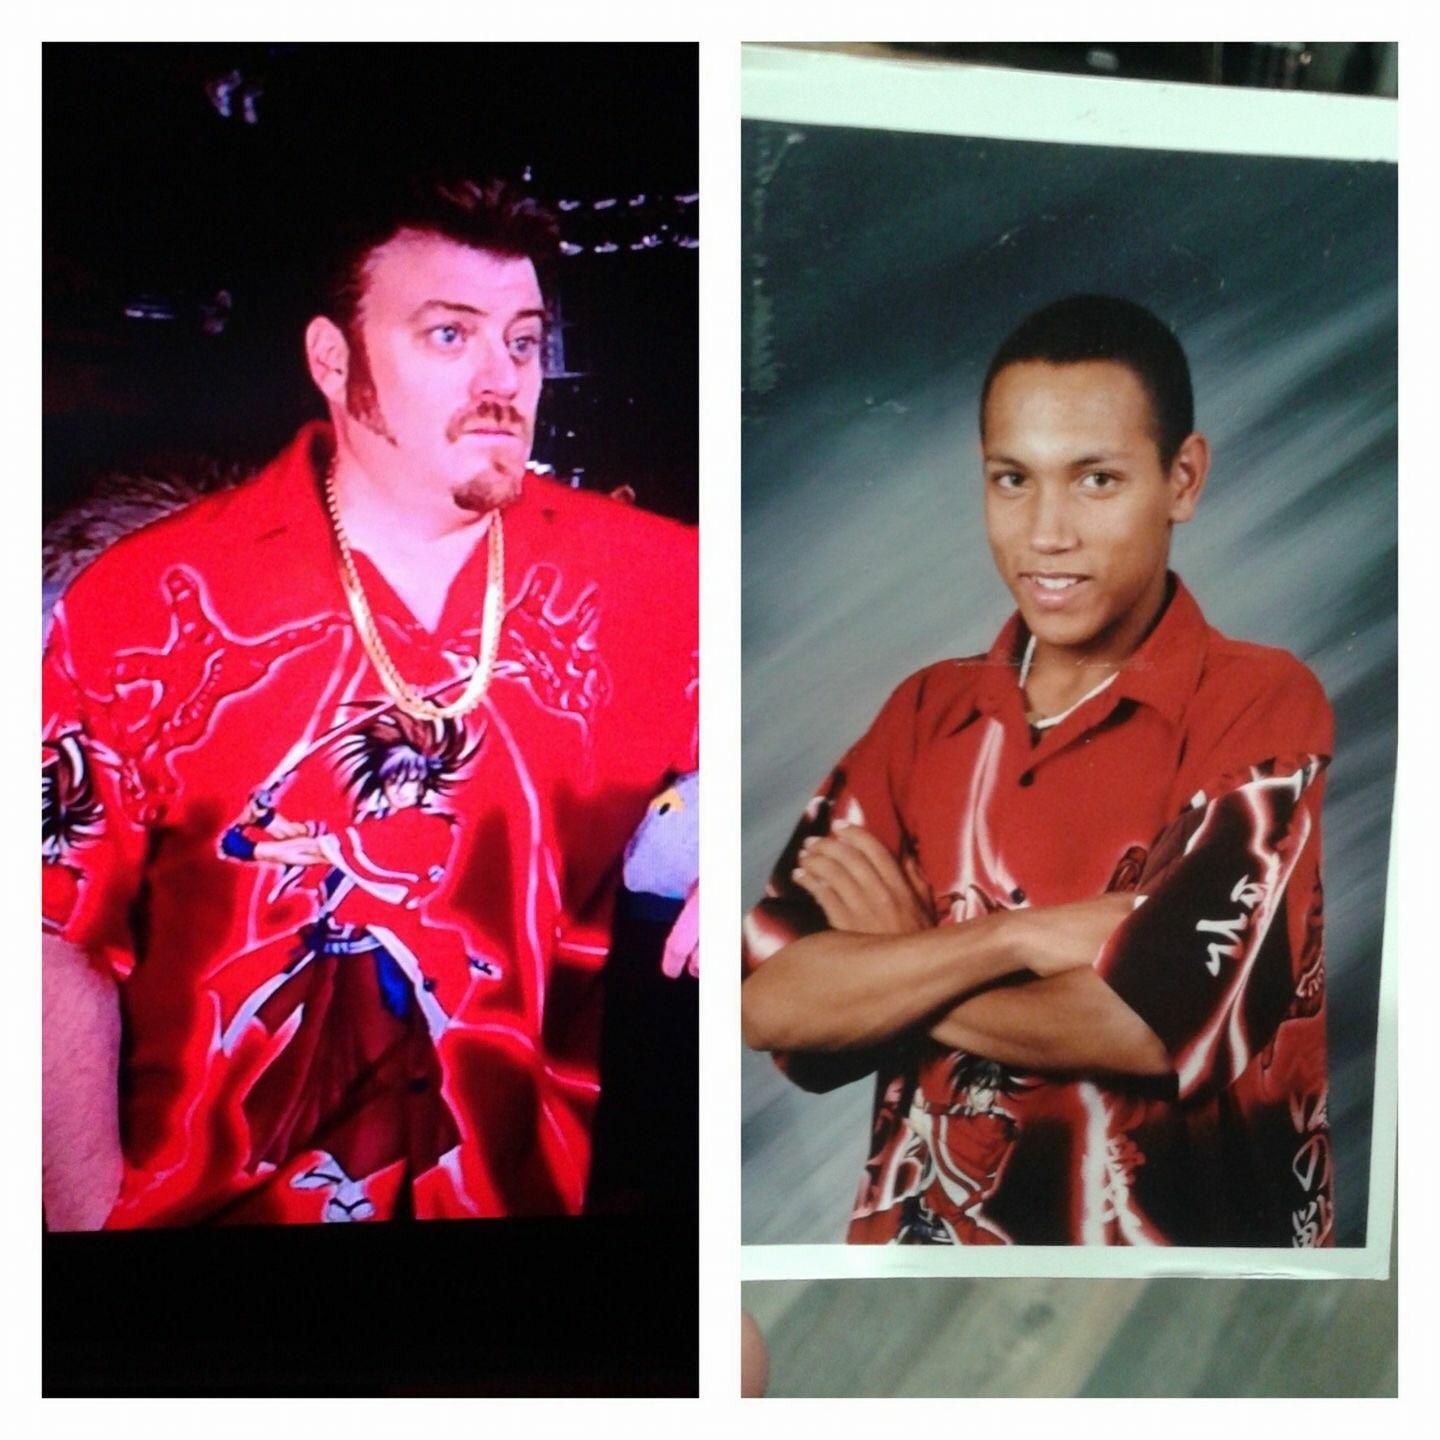 Apparently me circa 2001 had the same fashion sense as Ricky from Trailer Park Boys.